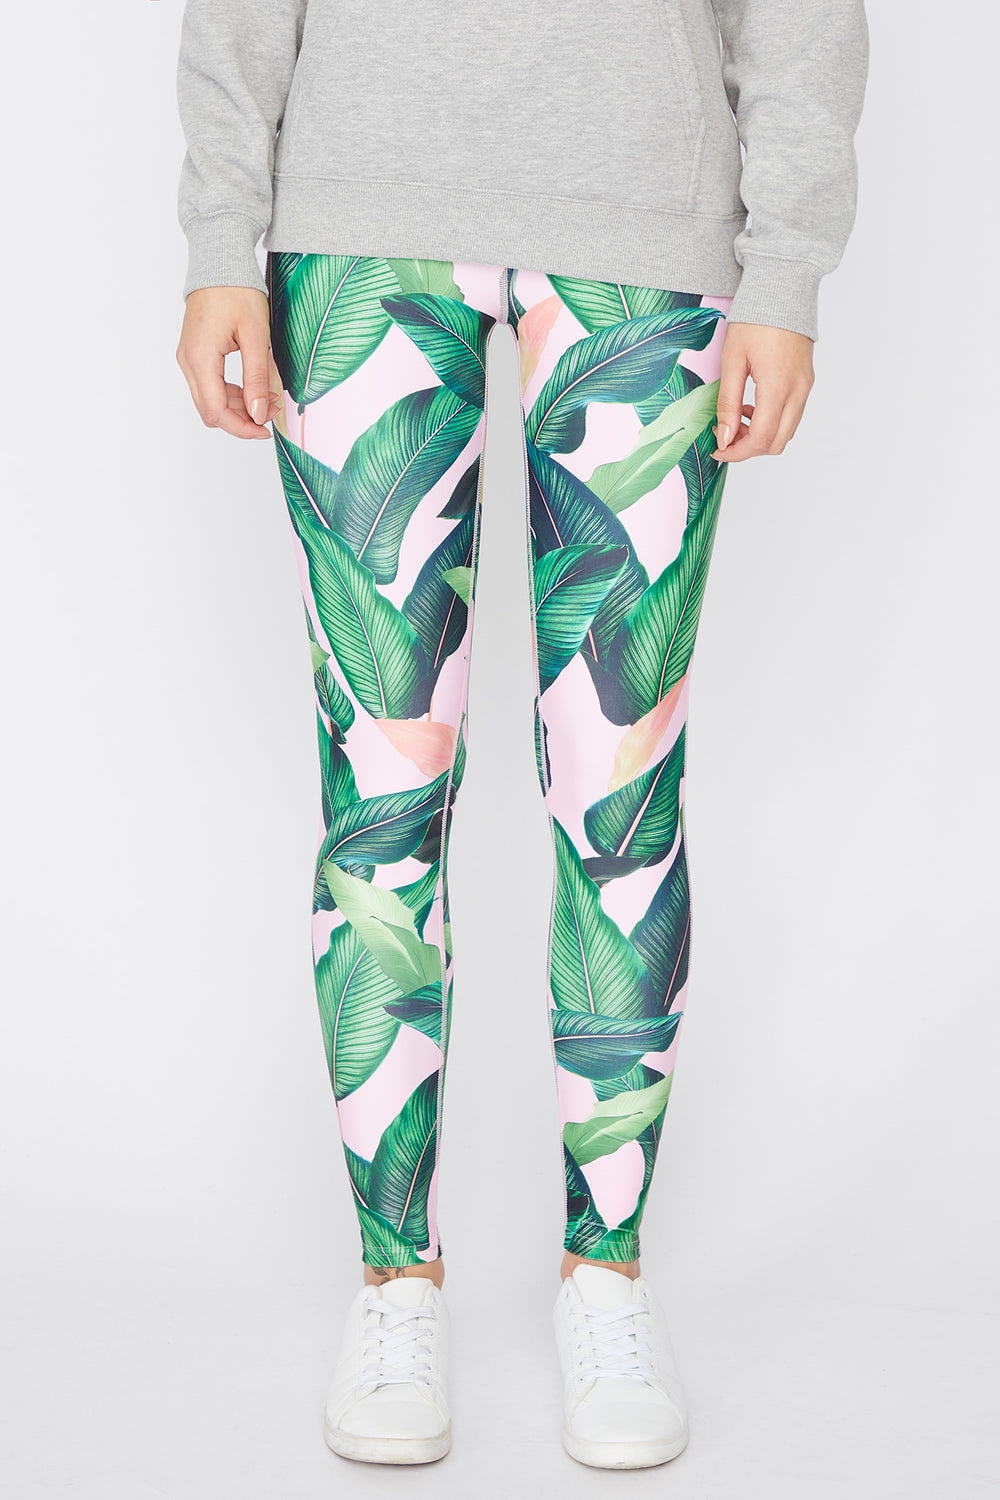 Zoo York Womens Tropical Print Leggings Multi